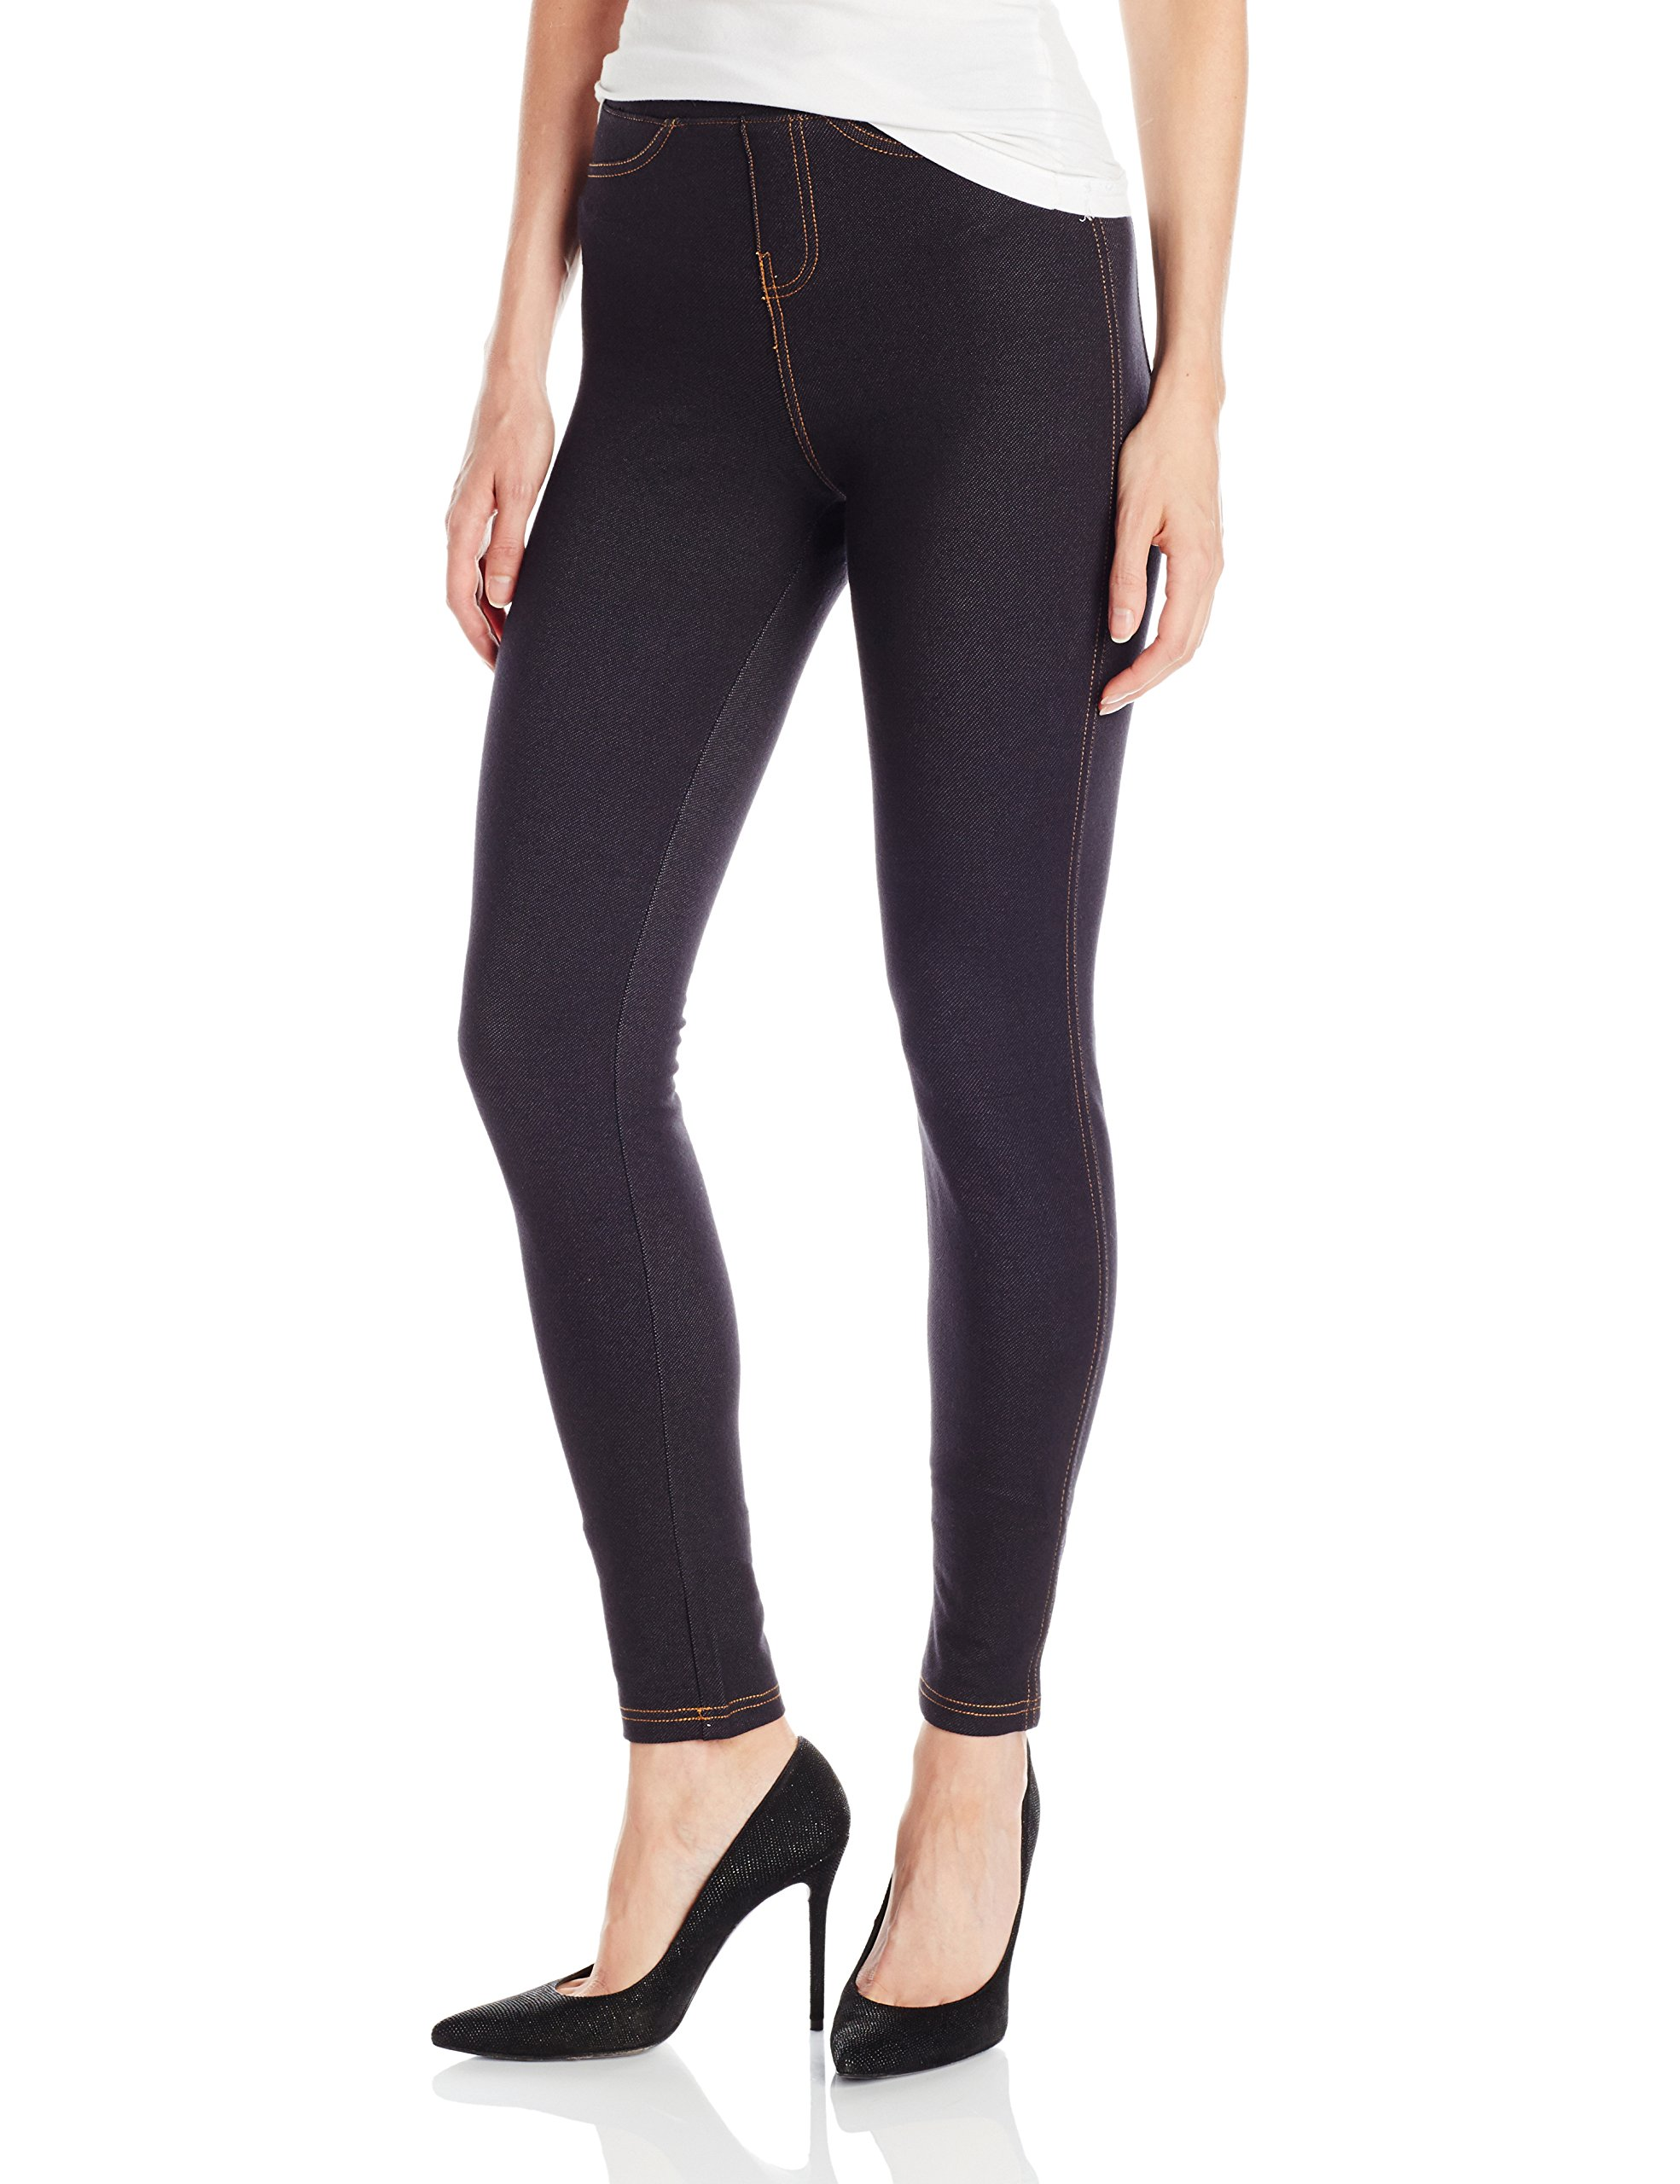 No Nonsense Women's Denim Legging, Black, X-Large